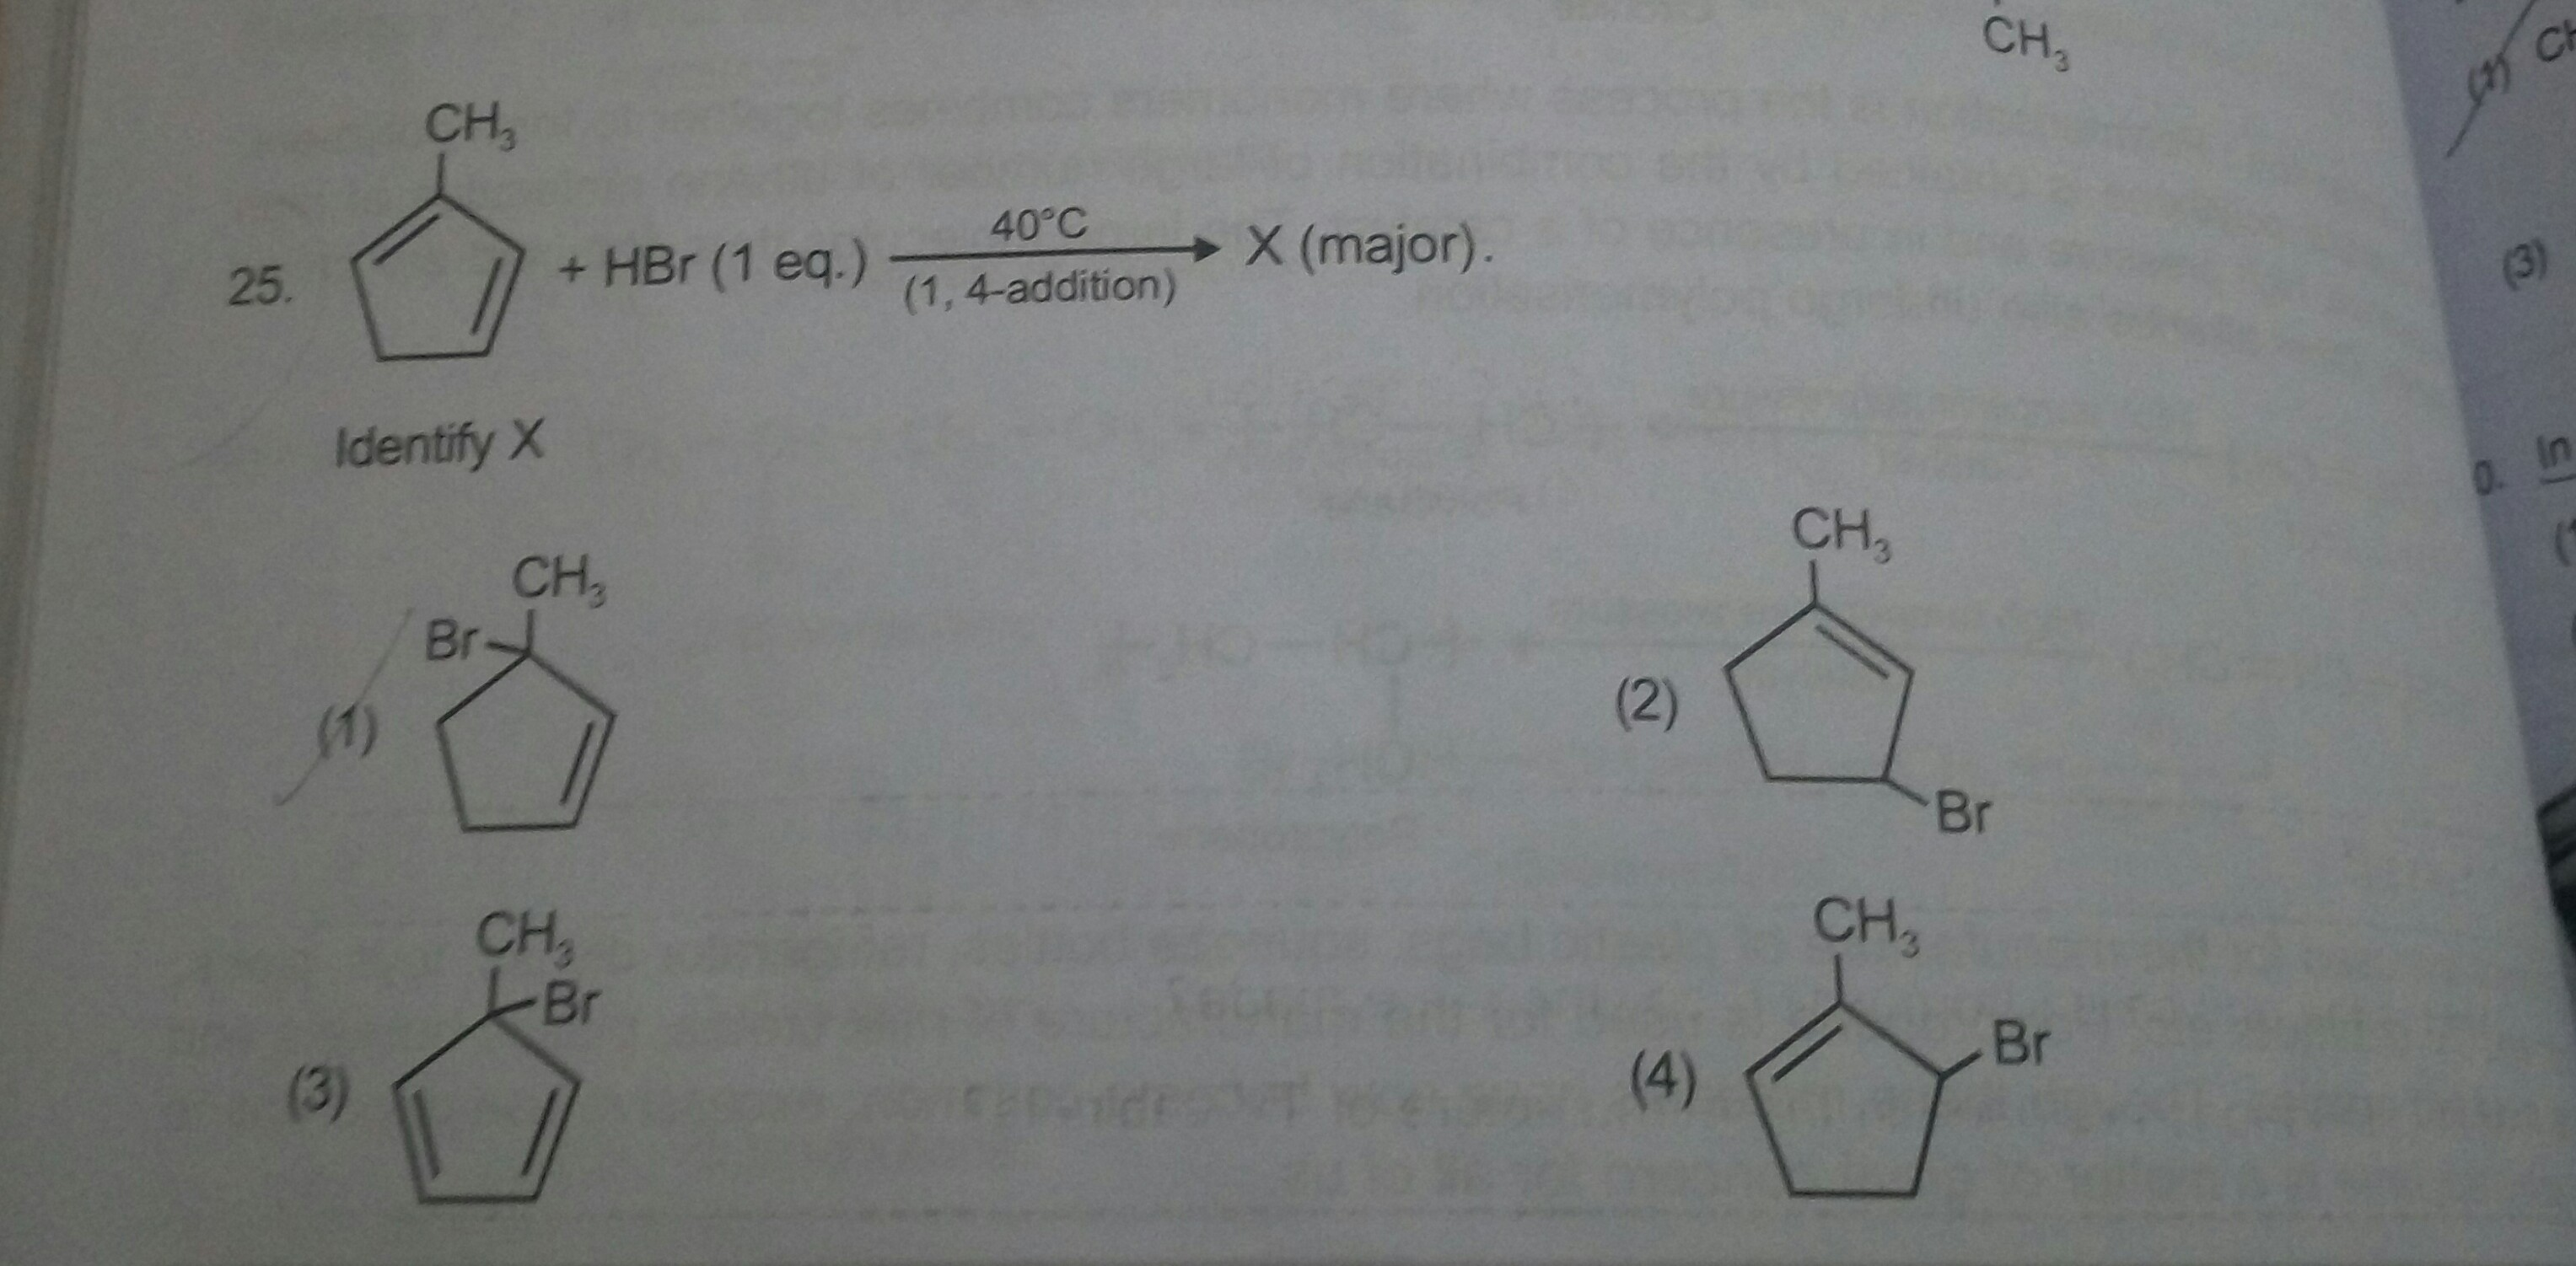 identify the major product in question no 25 . Please explain it.